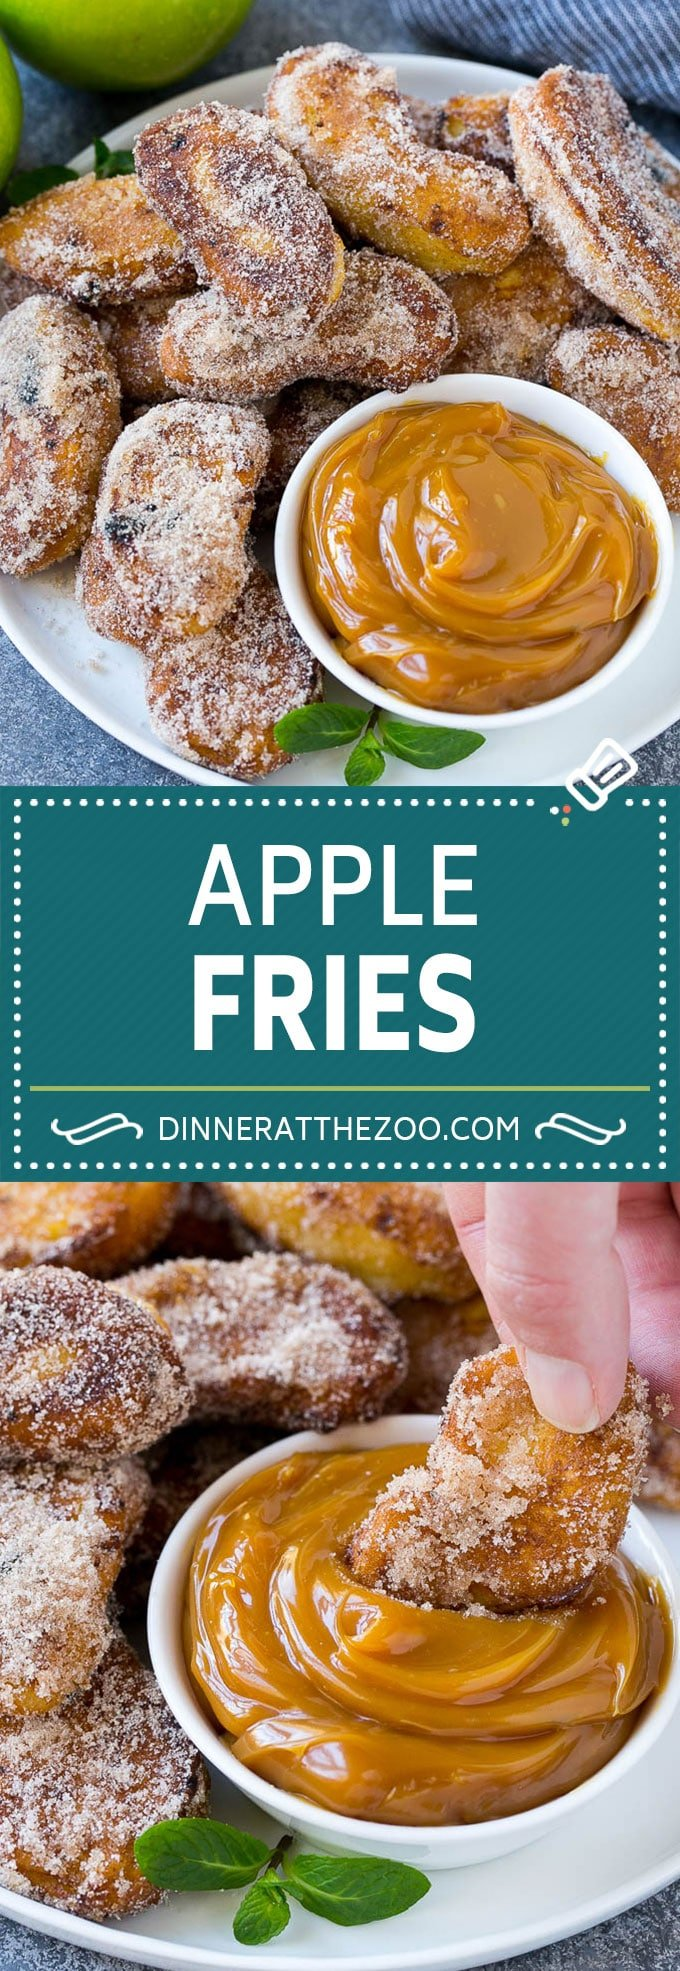 Apple Fries Recipe | Fried Apples Recipe | Cinnamon Sugar Apples | Apple Dessert Recipe #apples #dessert #dinneratthezoo #fall